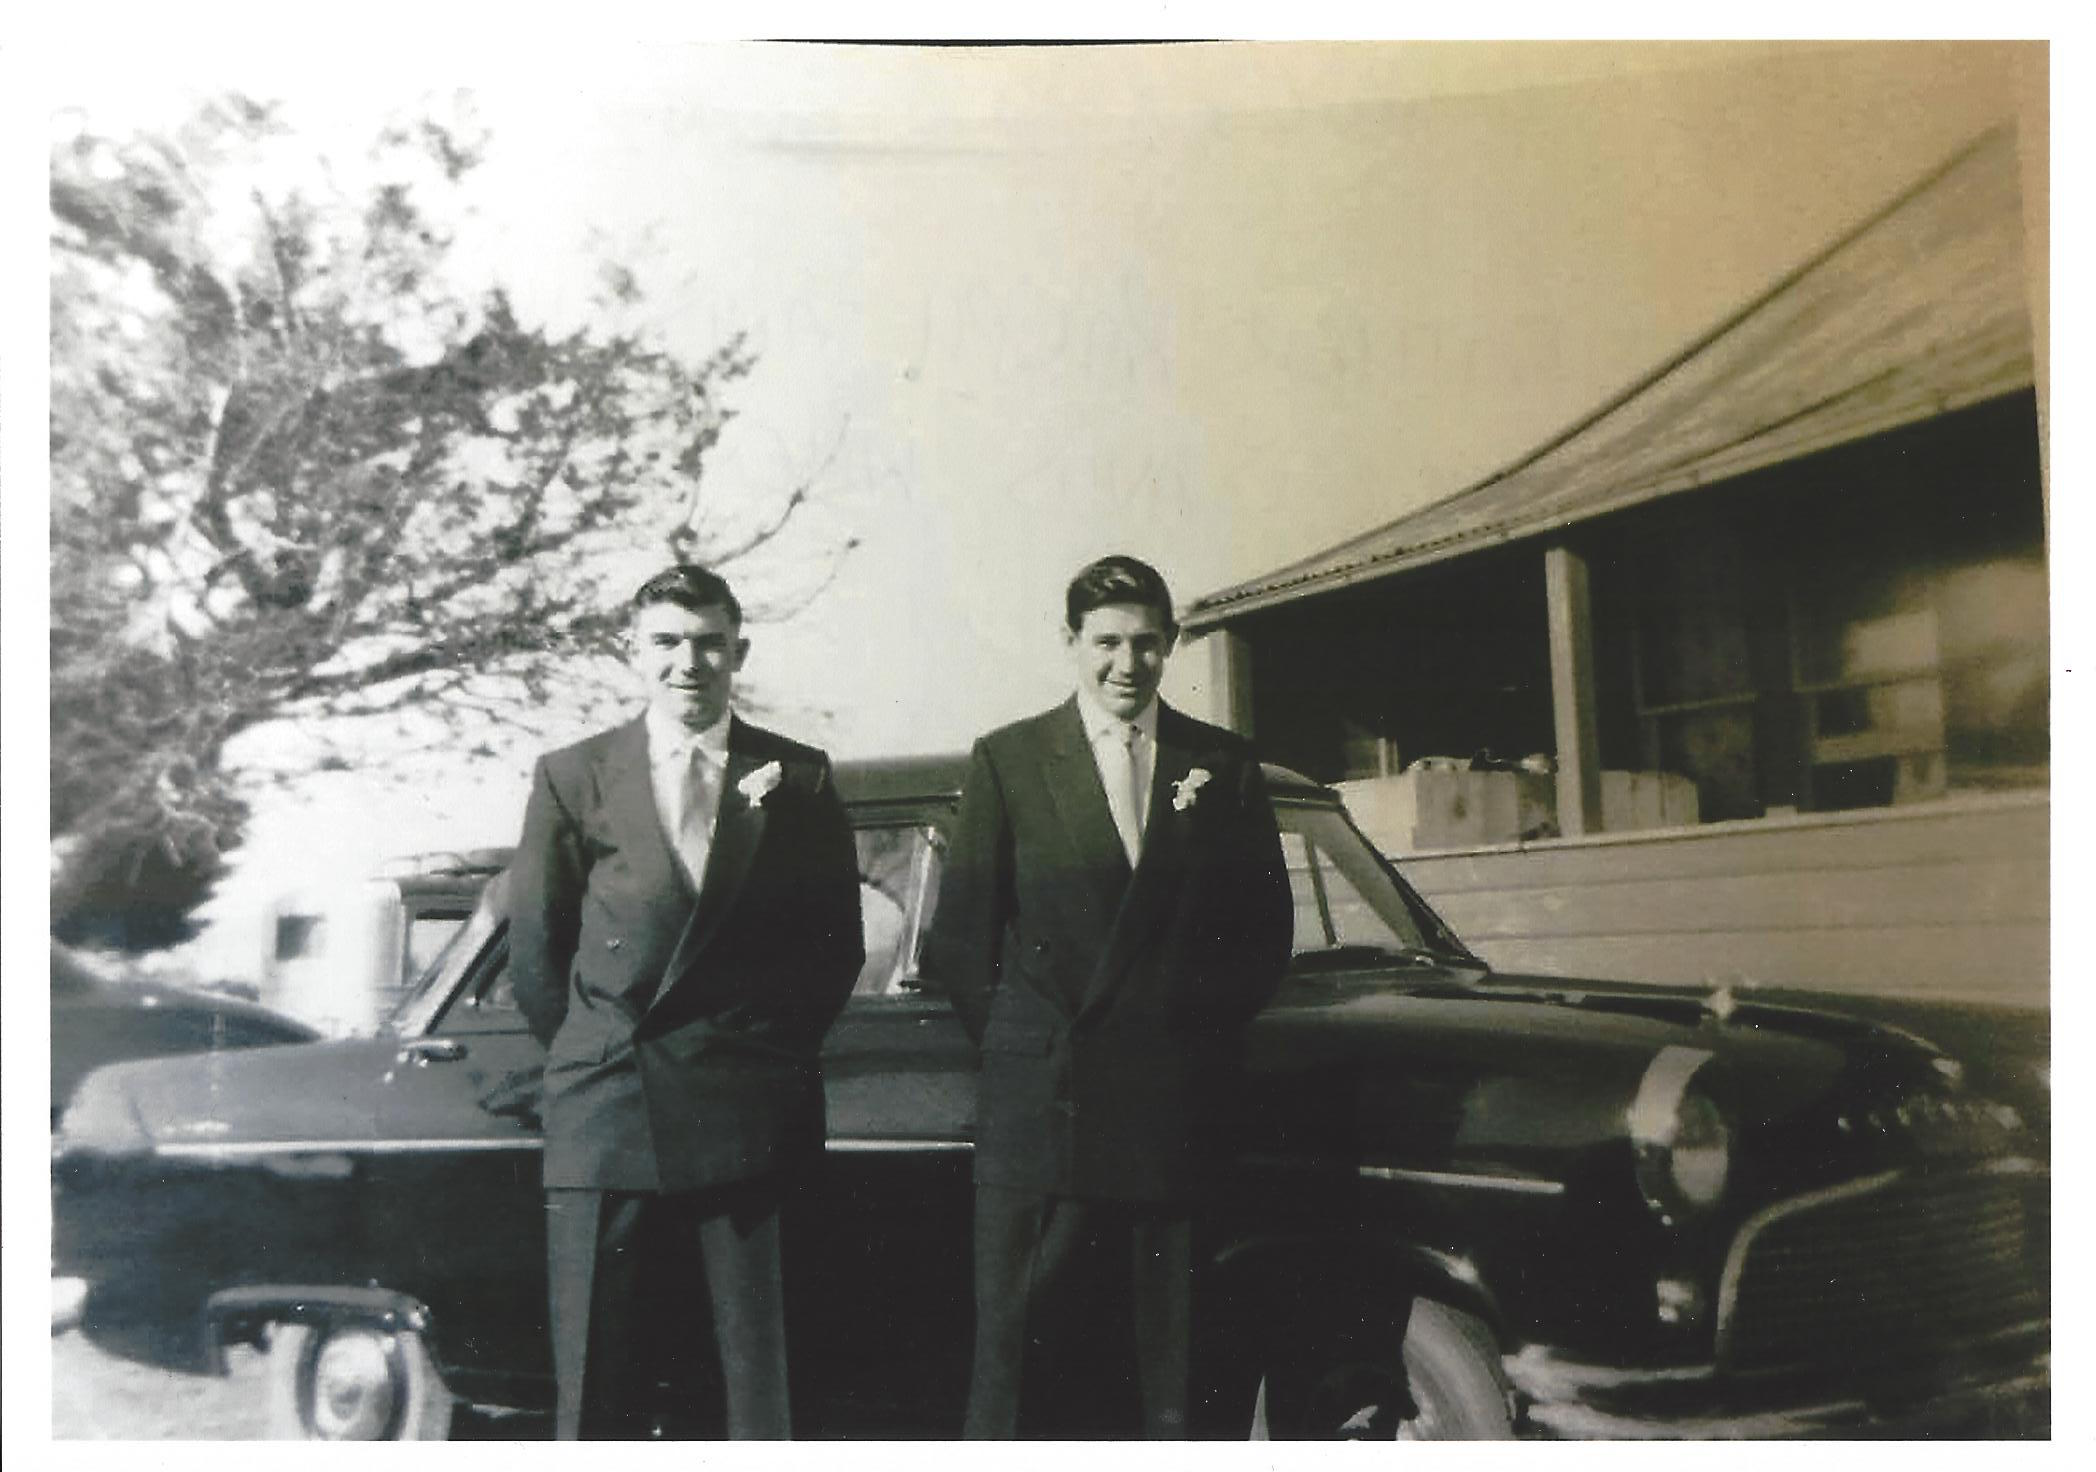 My Father Ralph and his brother David when he lived in NZ